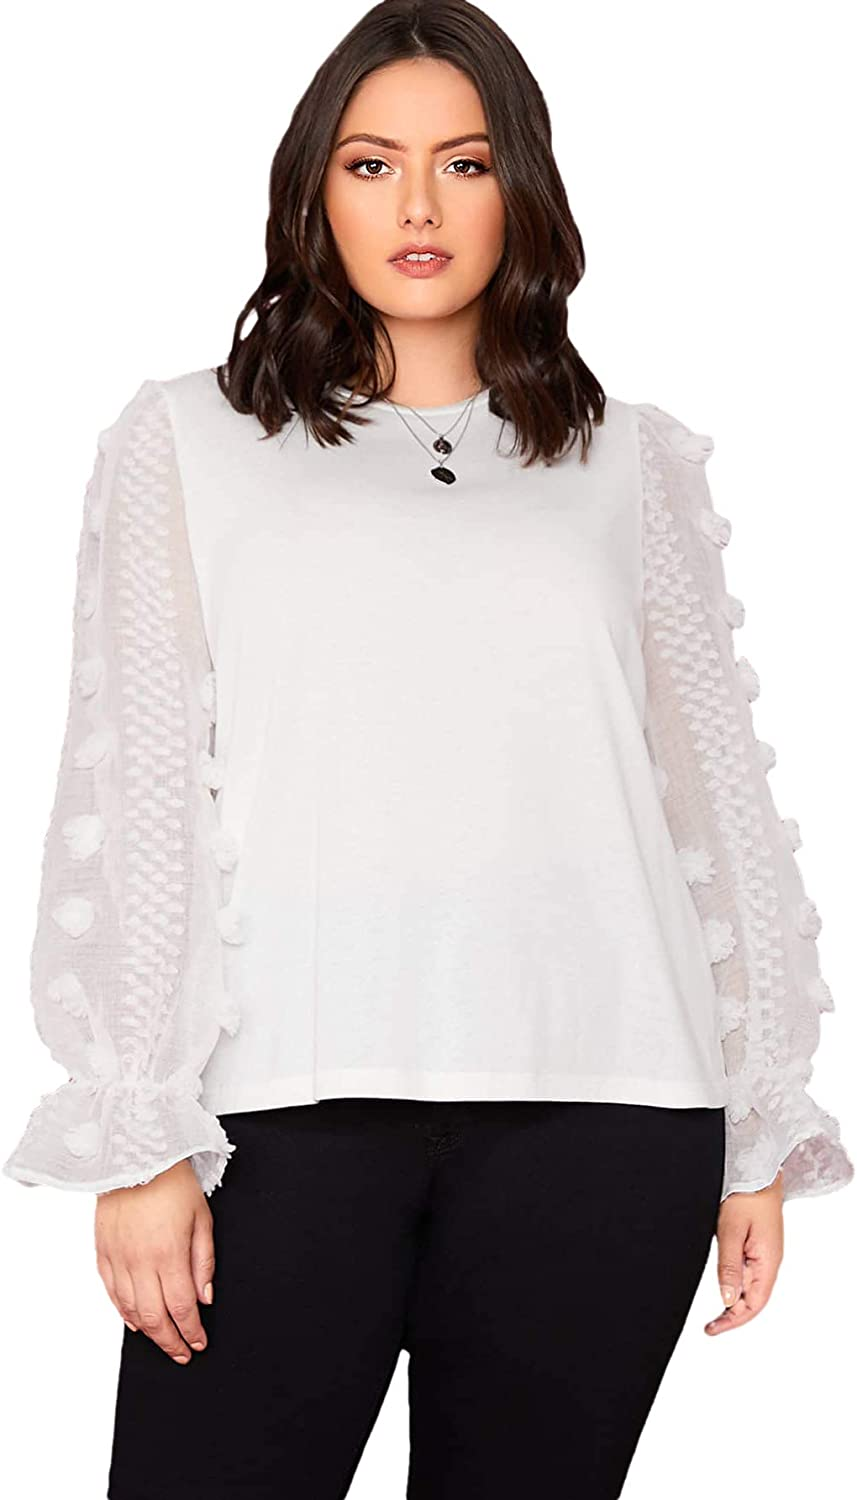 Romwe Women's Casaul Mesh Long Sleeve Round Neck Solid Blouse Top Tee